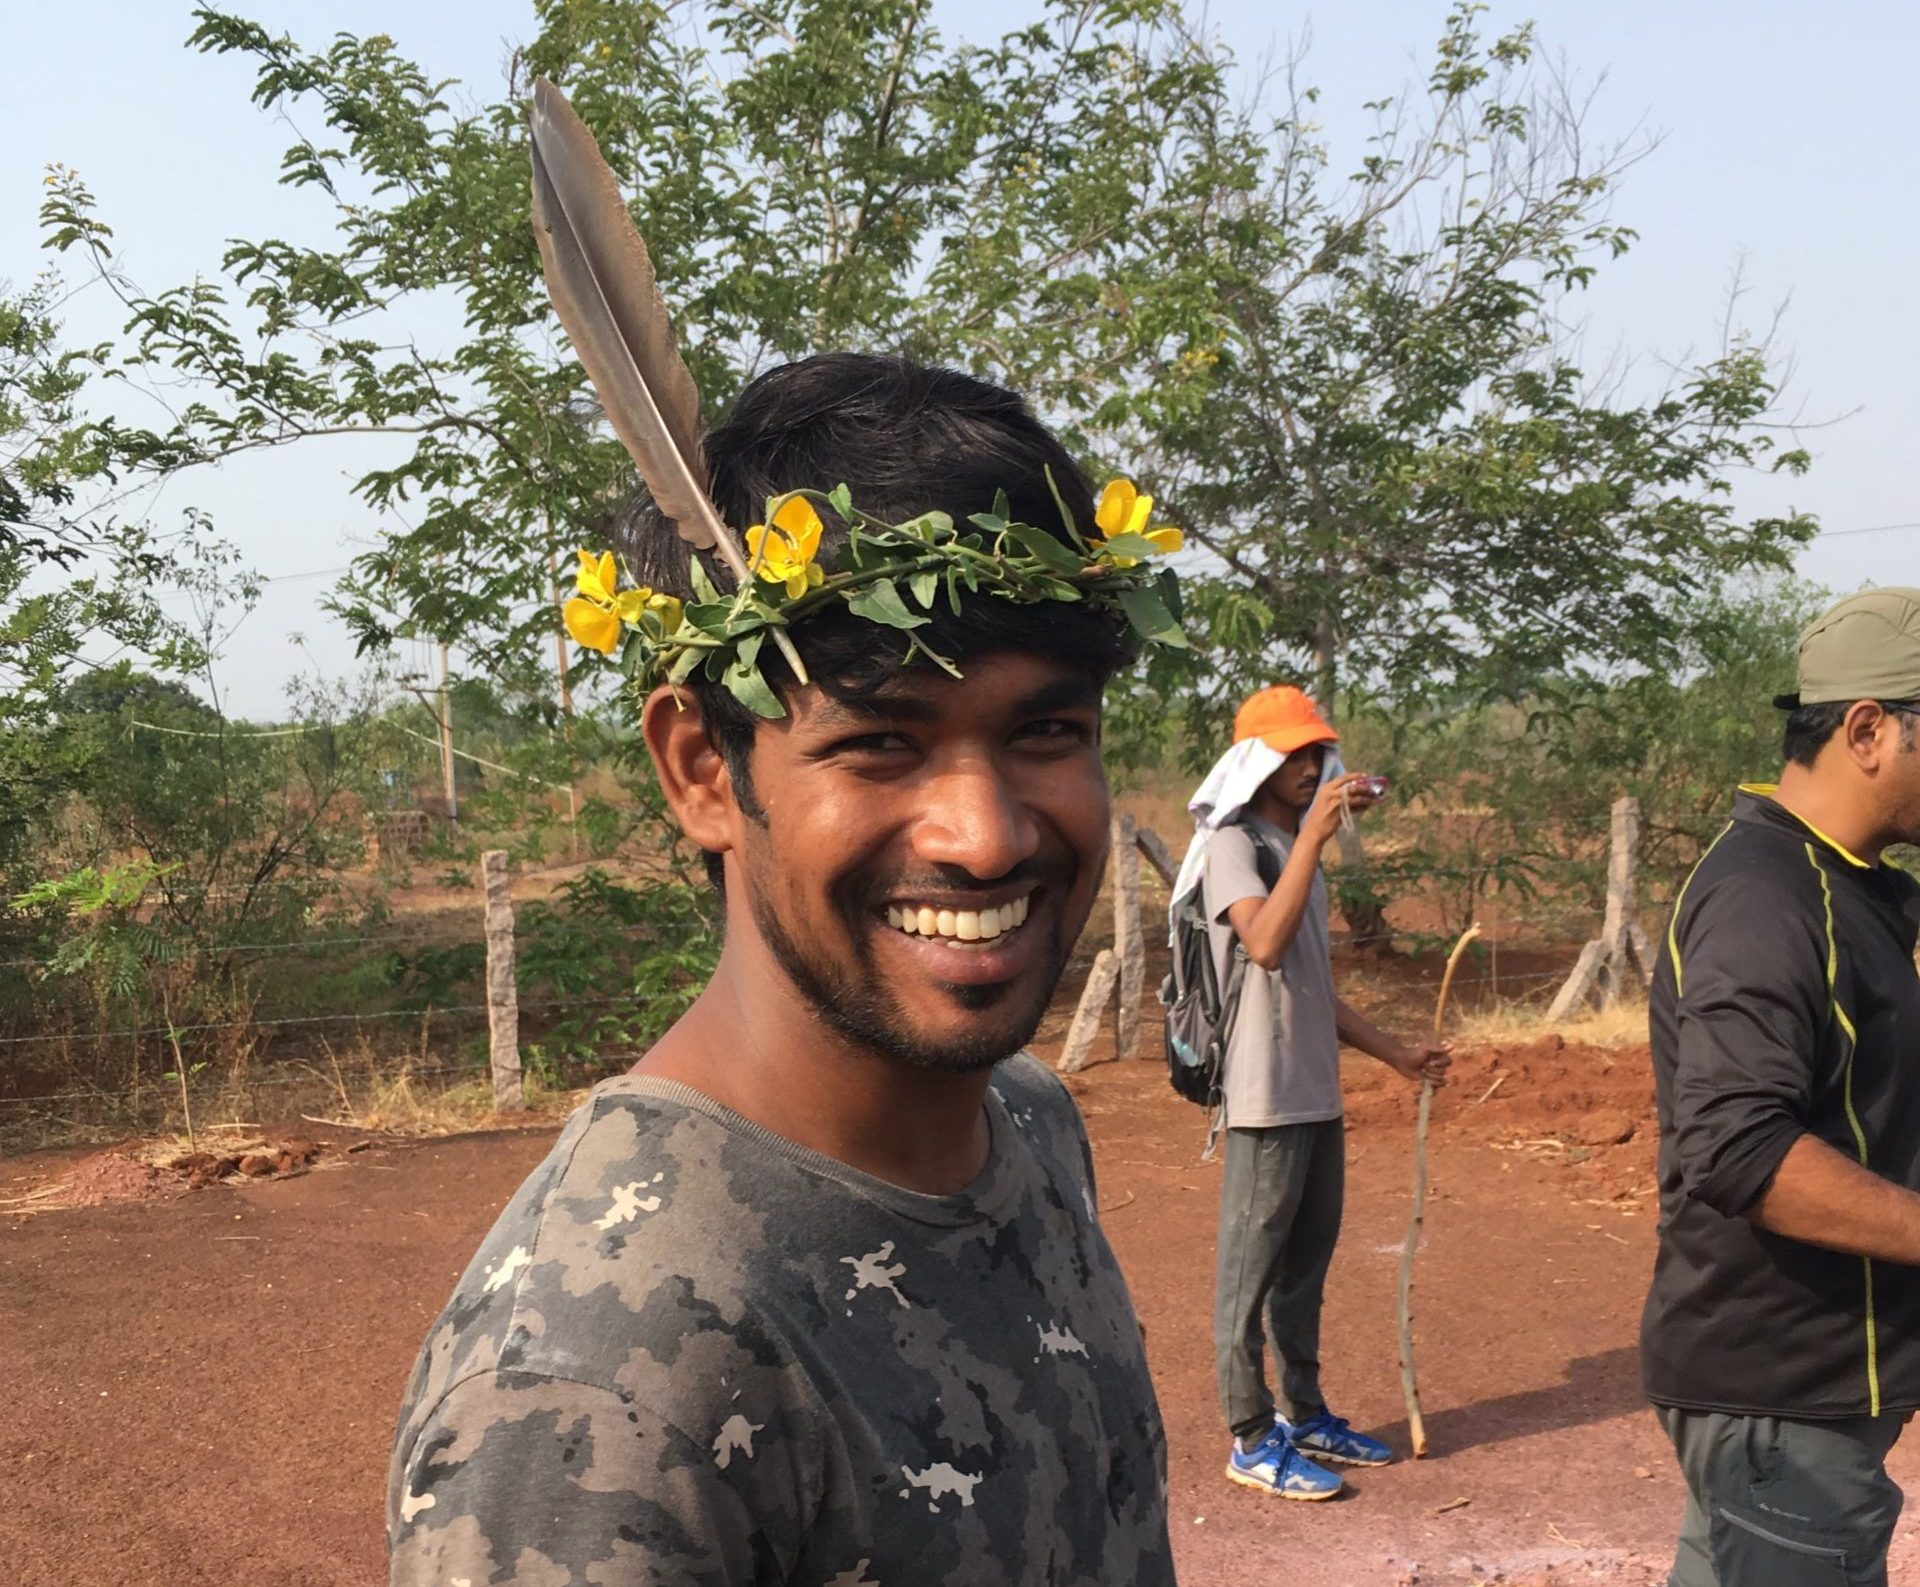 Ramesh, a third-generation farmer who worked in the field of wildlife conservation, found his calling in permaculture. Photo courtesy Ramesh.